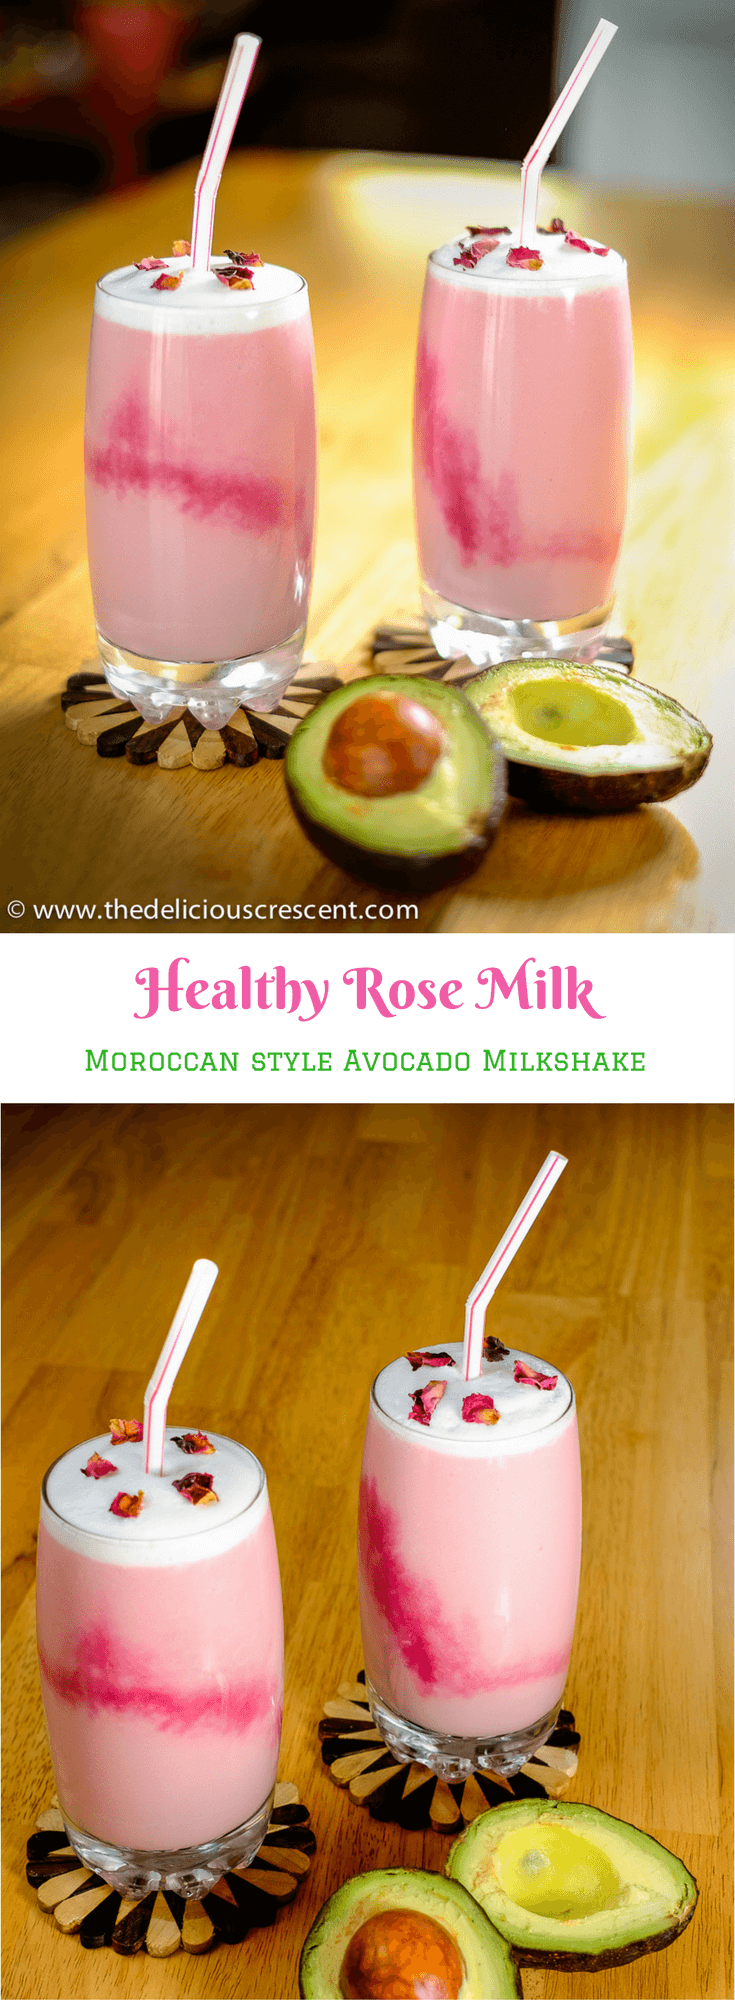 Healthy Rose Milk is a Moroccan style avocado smoothie. It is so creamy, fragrant, delicious and heart healthy. And it is a good source of monounsaturated fats, potassium and protein. #avocado #glutenfree #healthyrecipes #eggfree #nutfree #quickandeasy